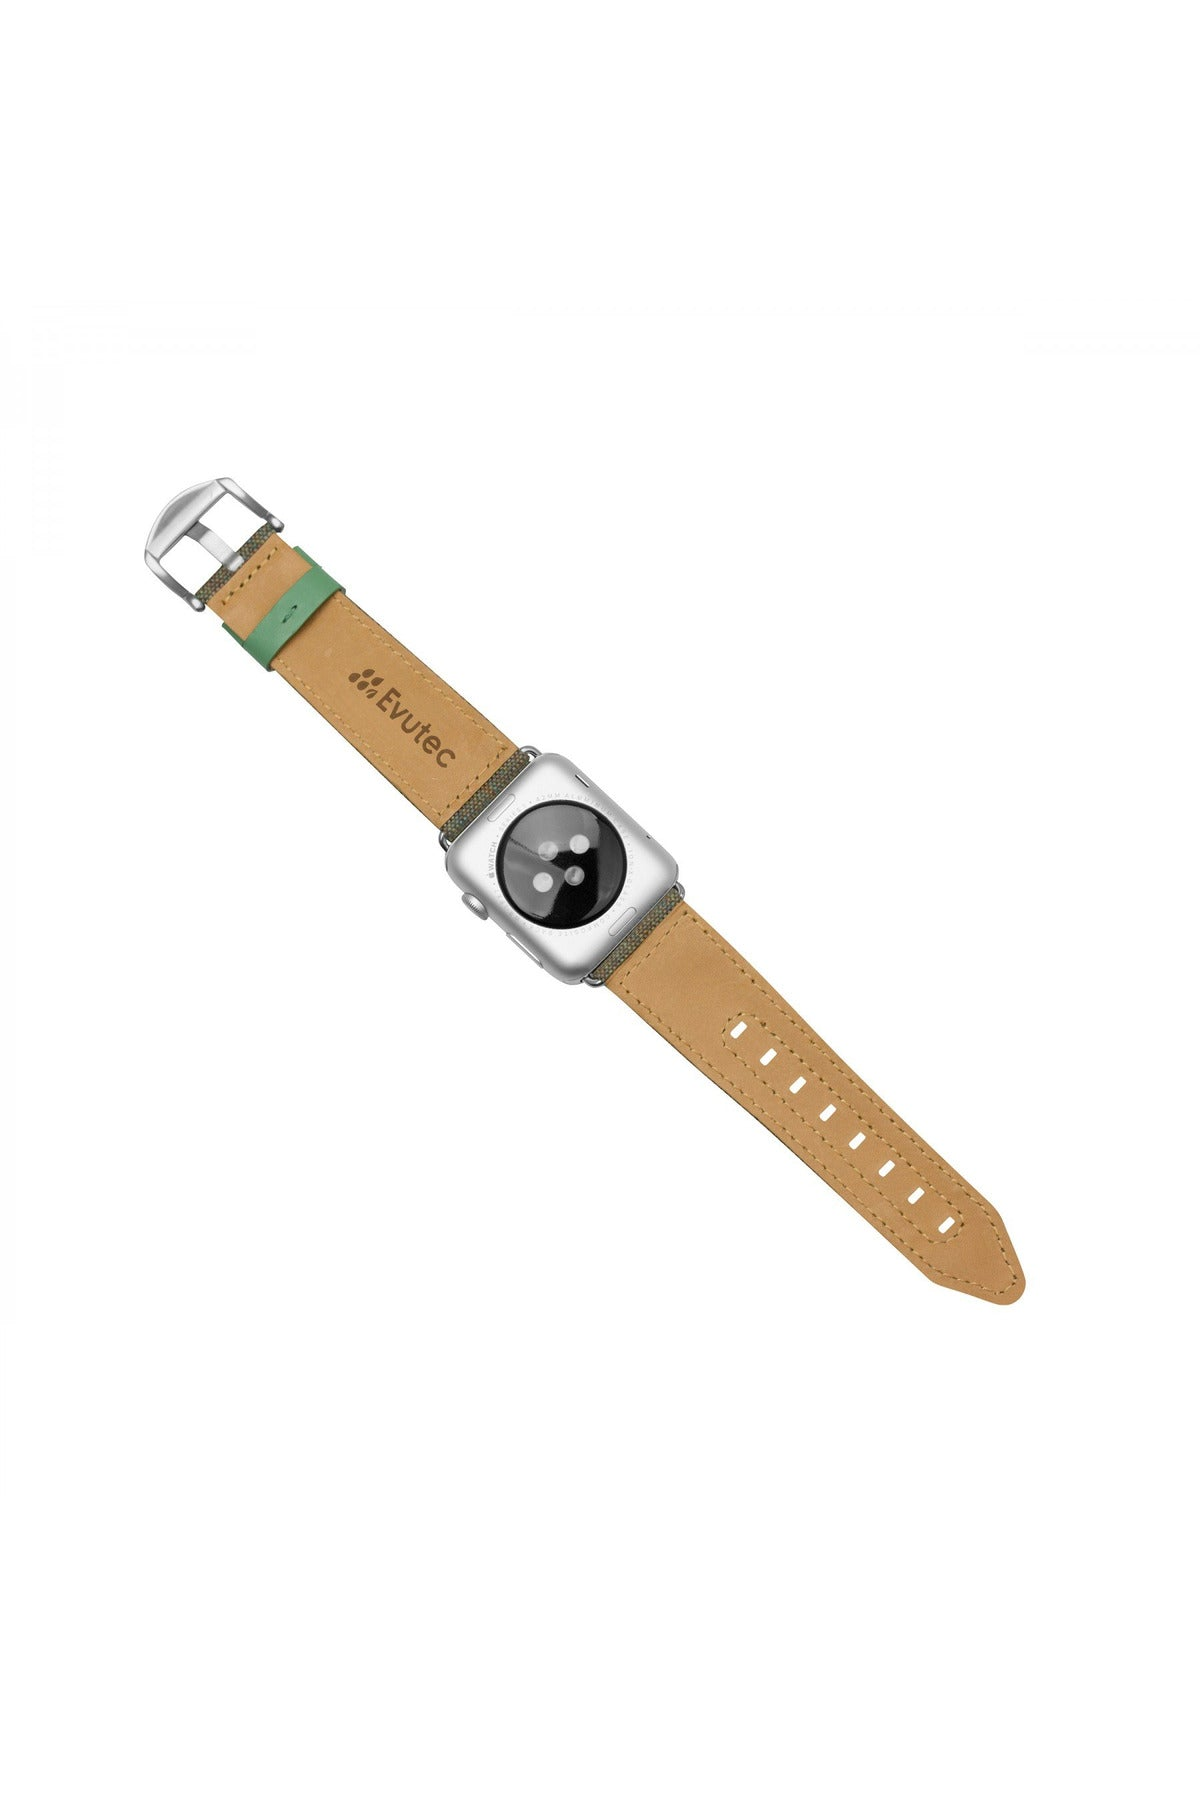 Evutec Northill Series Apple Watch Band 42MM & 44MM - Chroma/Sage (WB-A13-42-D10) - www.emarketkw.com